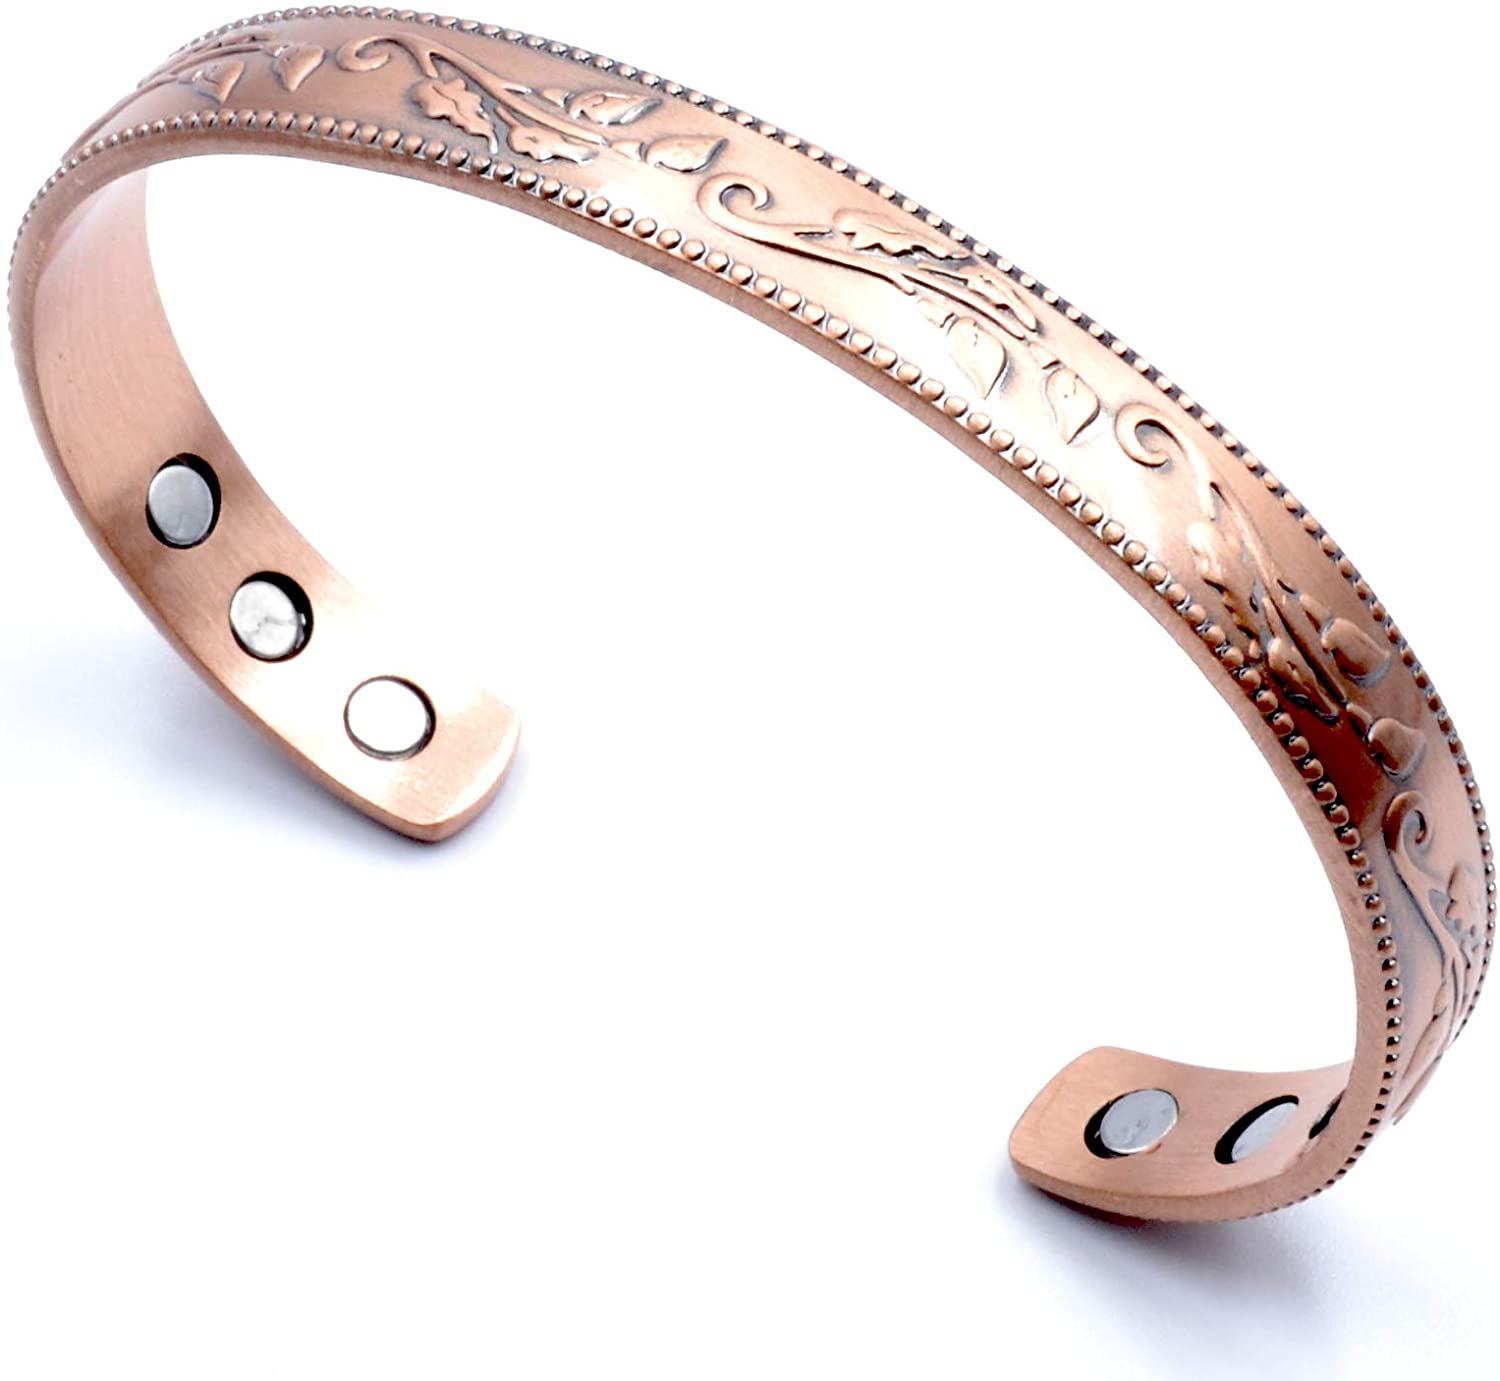 Copper woman bracelet Handmade bracelet Copper jewelry Copper wire wrapped woman cuff Geometric bracelet with spirals Gift for her